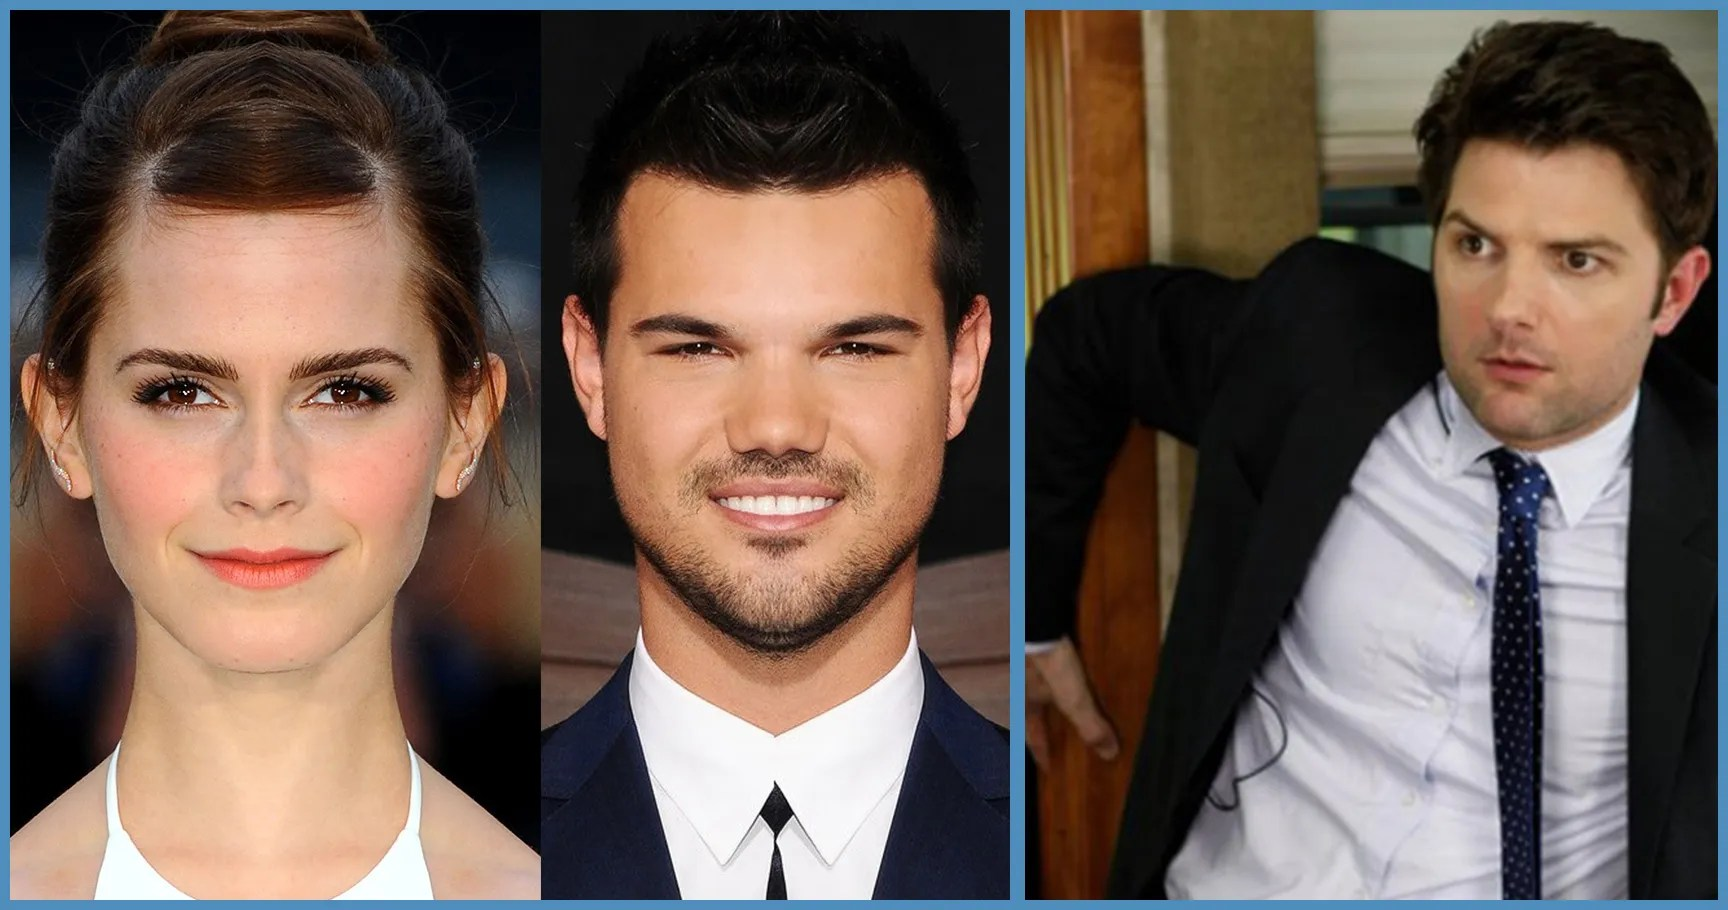 Scary Celebrities Symmetrical Faces